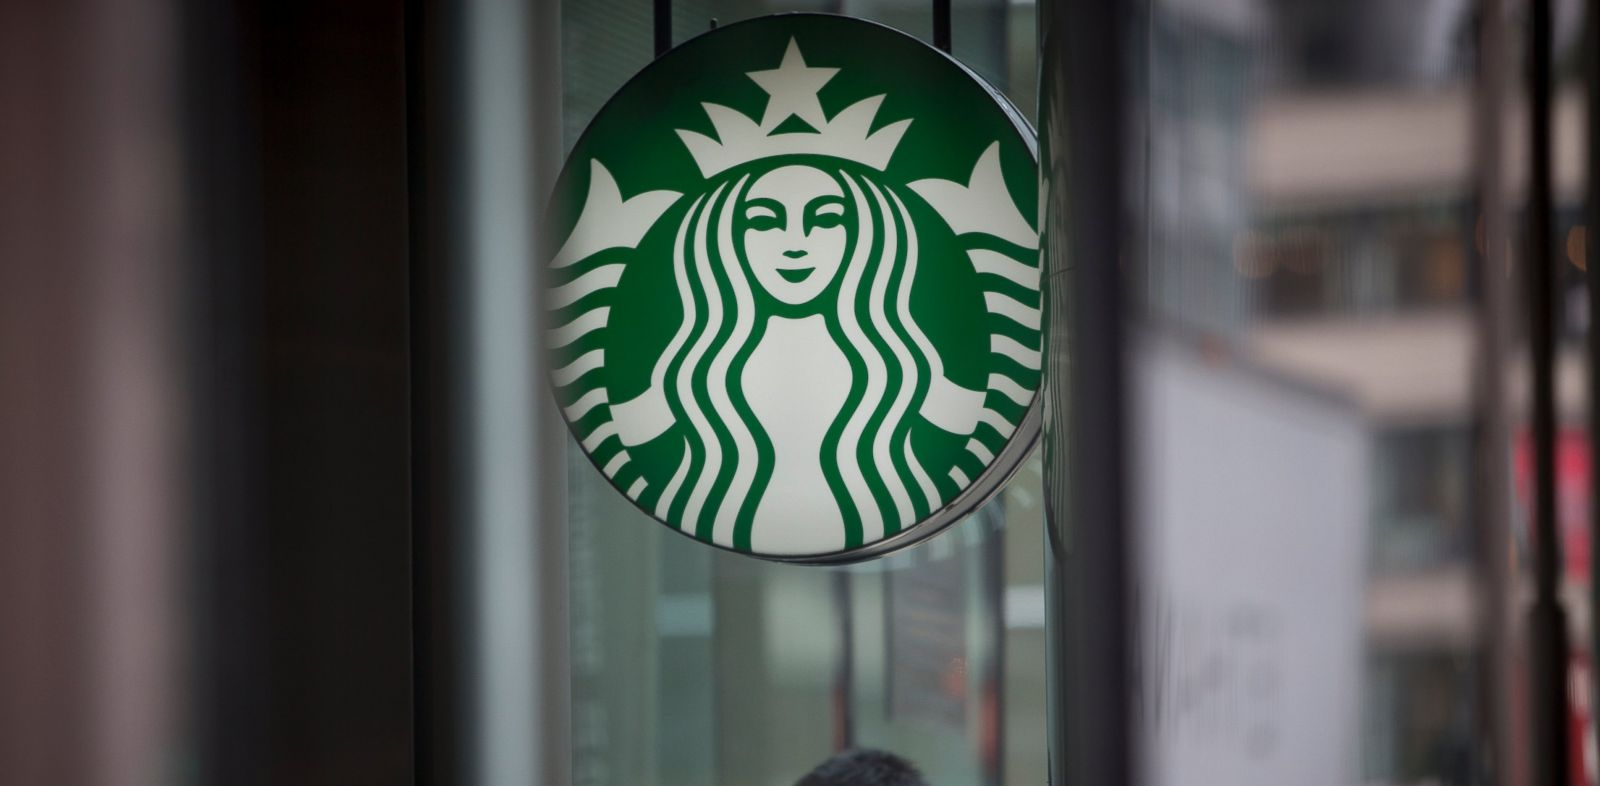 PHOTO: Pedestrians pass in front of a Starbucks Corp. location in New York, U.S., on Tuesday, April 23, 2013.